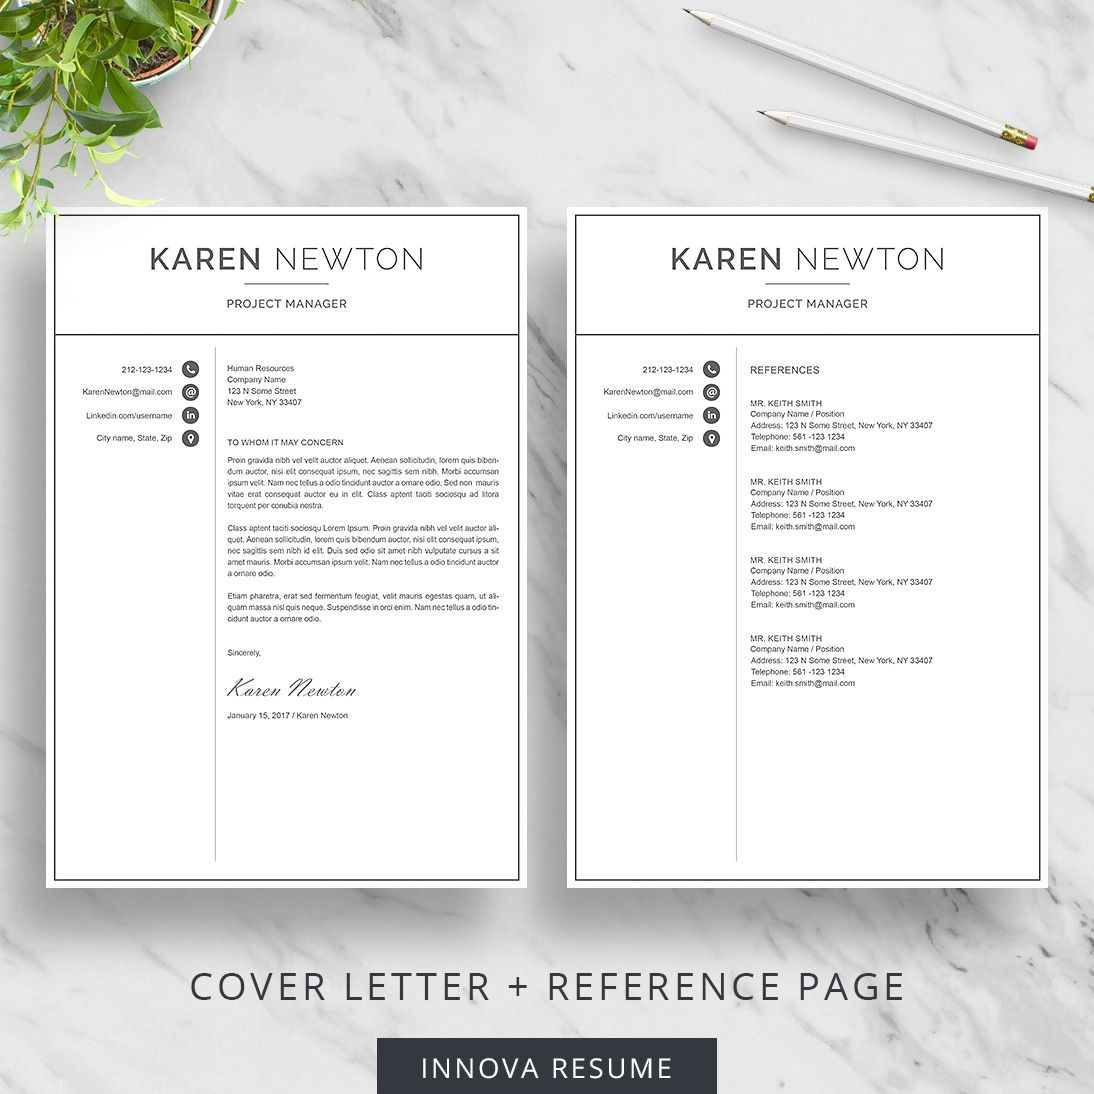 Resume Reference Page Template Modern Resume Template For Word  Minimalist Resume Design  2